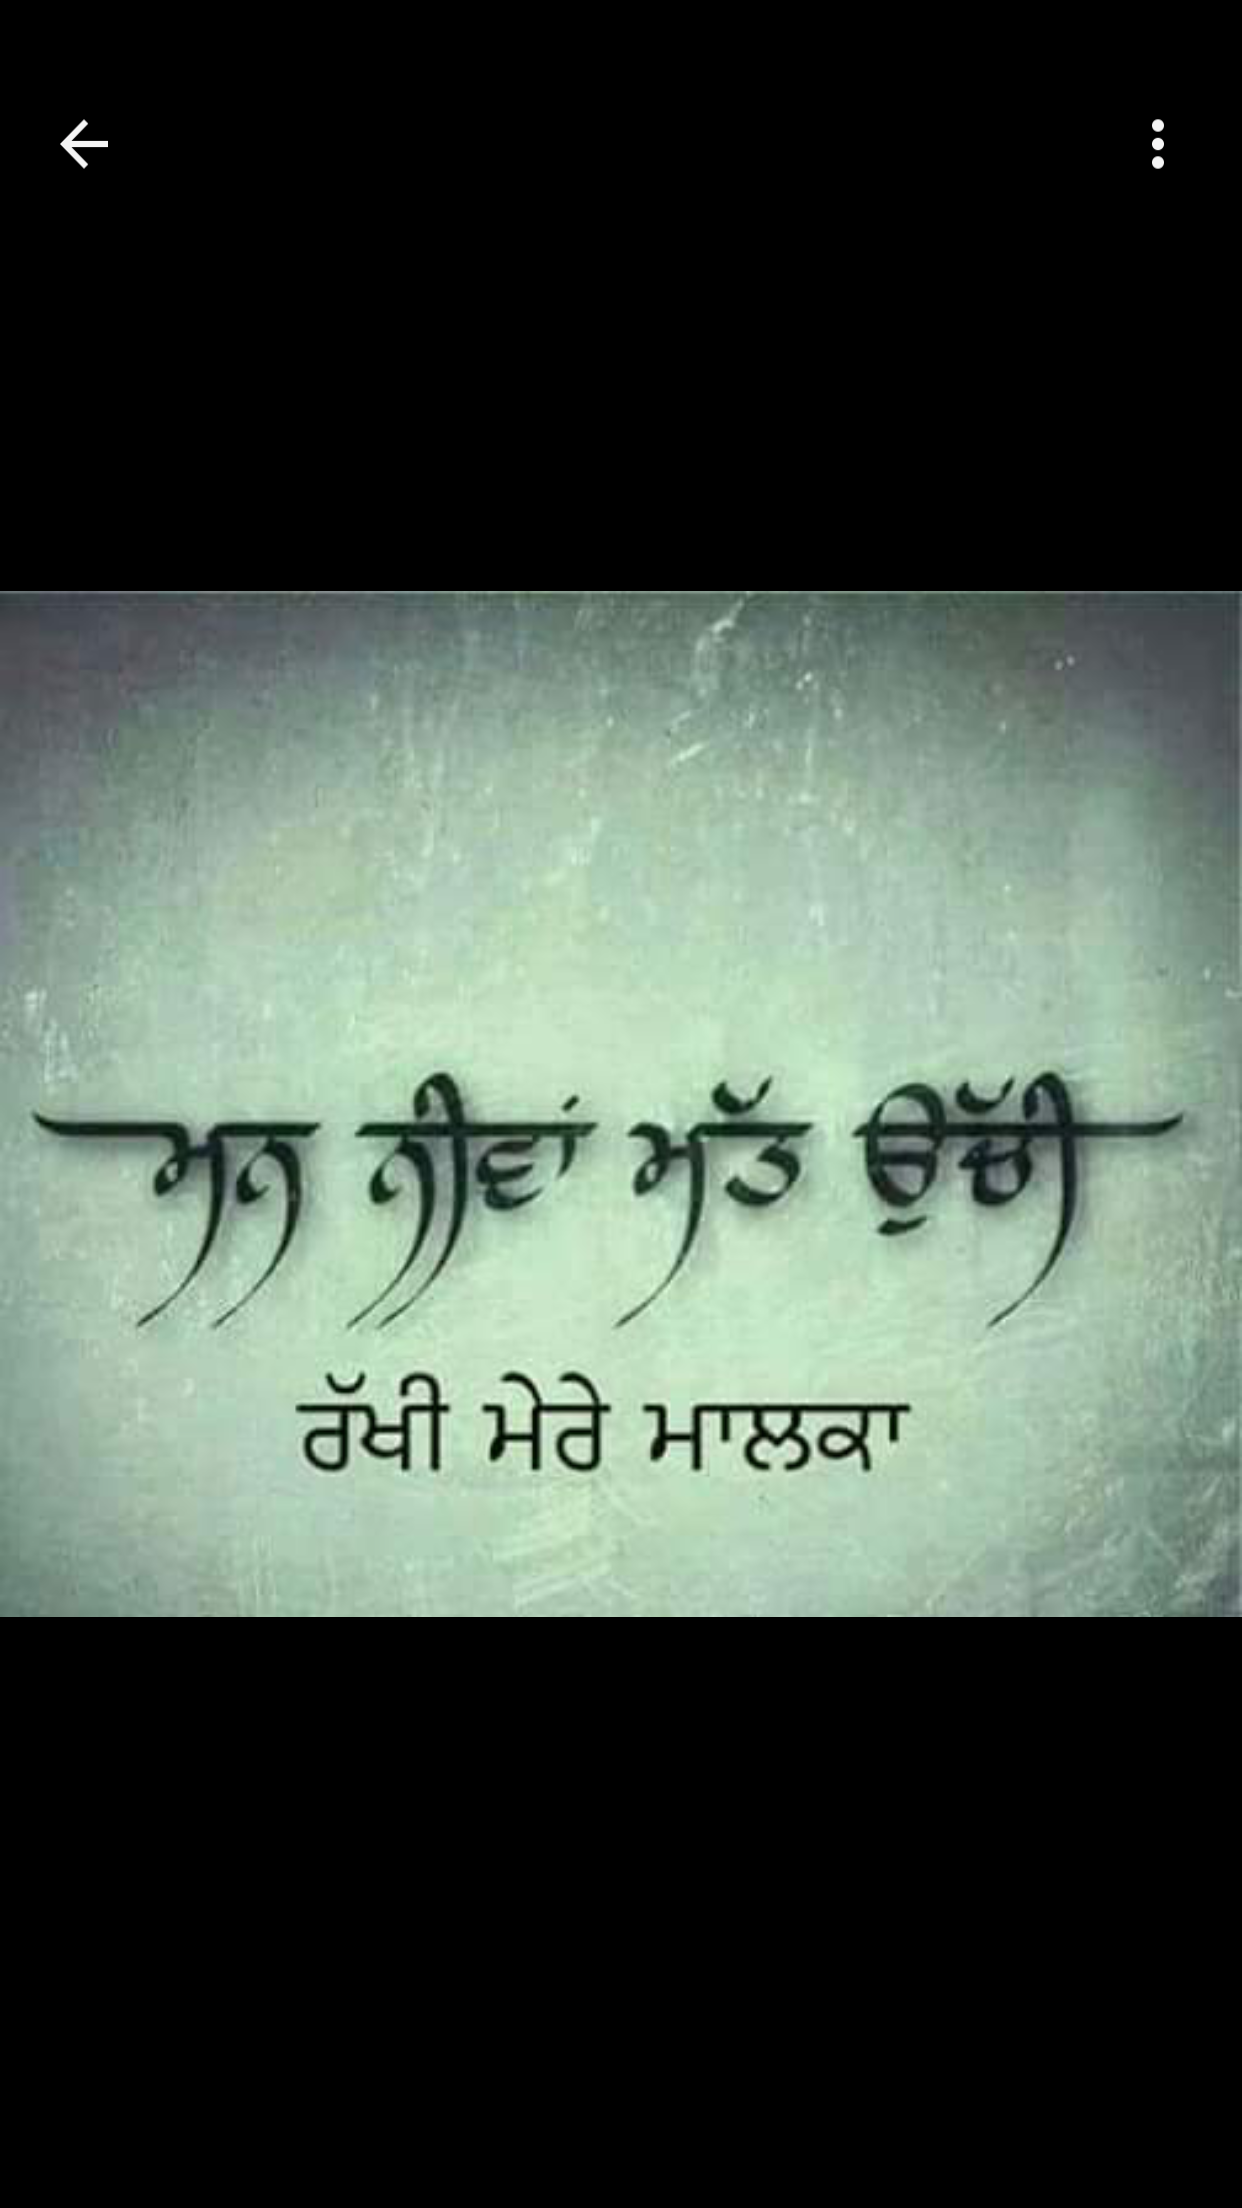 hd exclusive good morning images gurbani quotes quoteambition